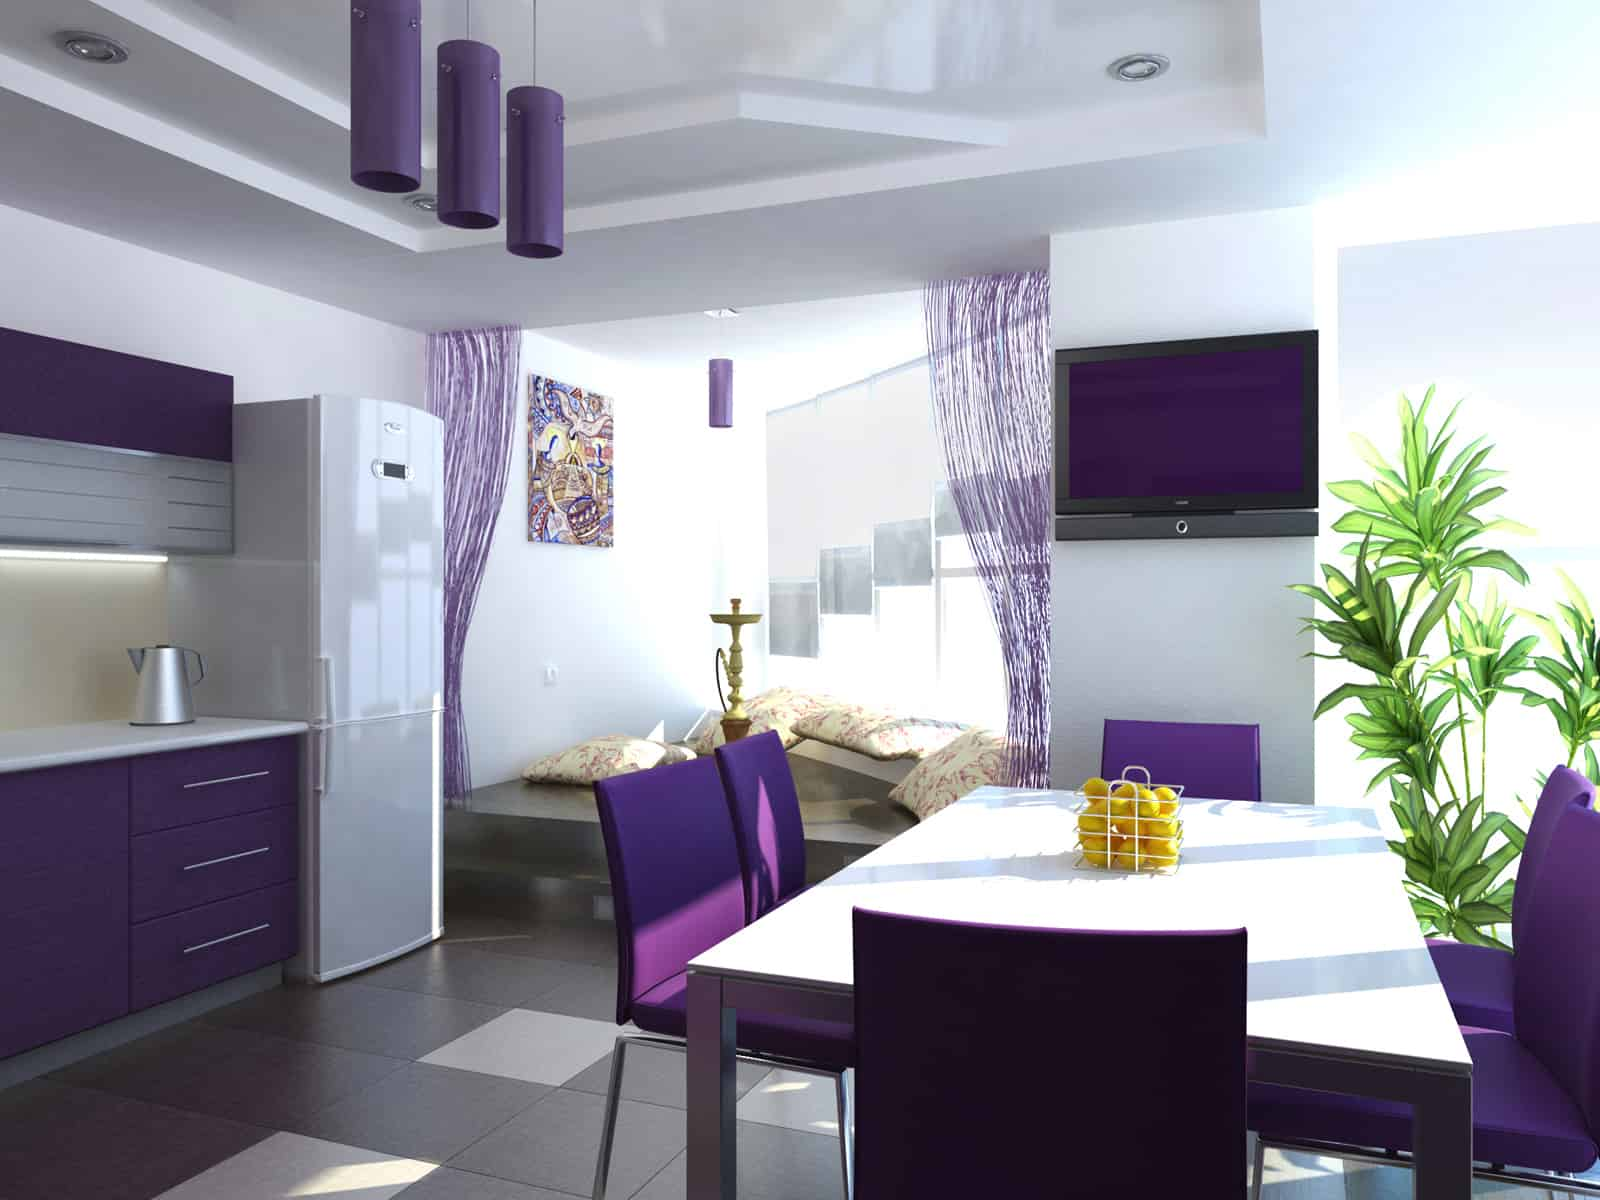 Interior design trends 2017 purple kitchen Home interior design ideas for kitchen